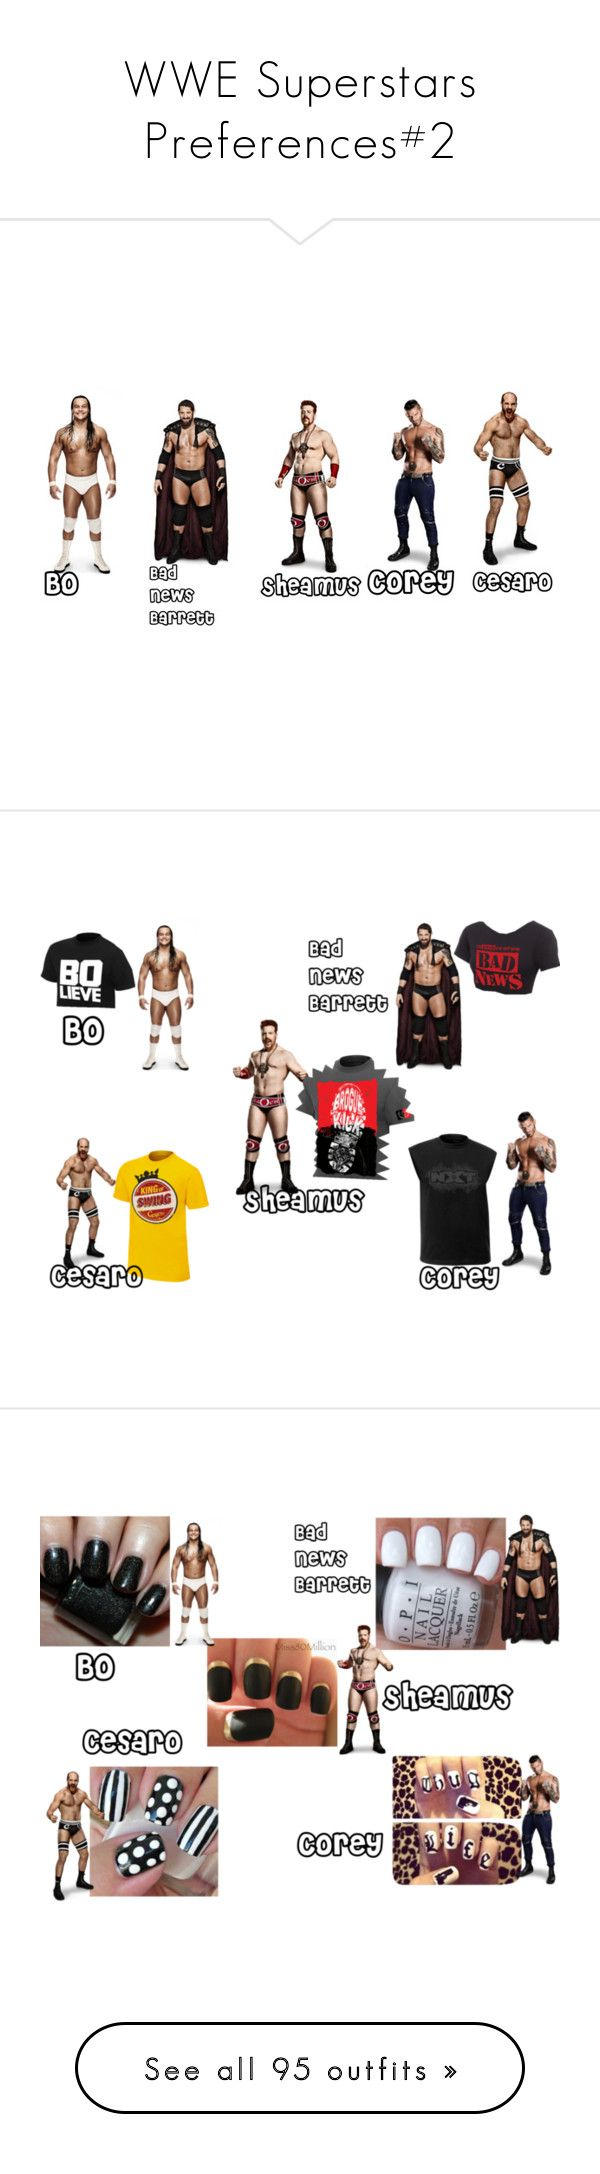 """""""WWE Superstars Preferences#2"""" by anaeve ❤ liked on Polyvore featuring Glitter Gal, Allurez, Blue Nile, Jones + Jones, Jay Ahr, Juicy Couture, Halston Heritage, Nina Ricci, Three Little Words and CO"""